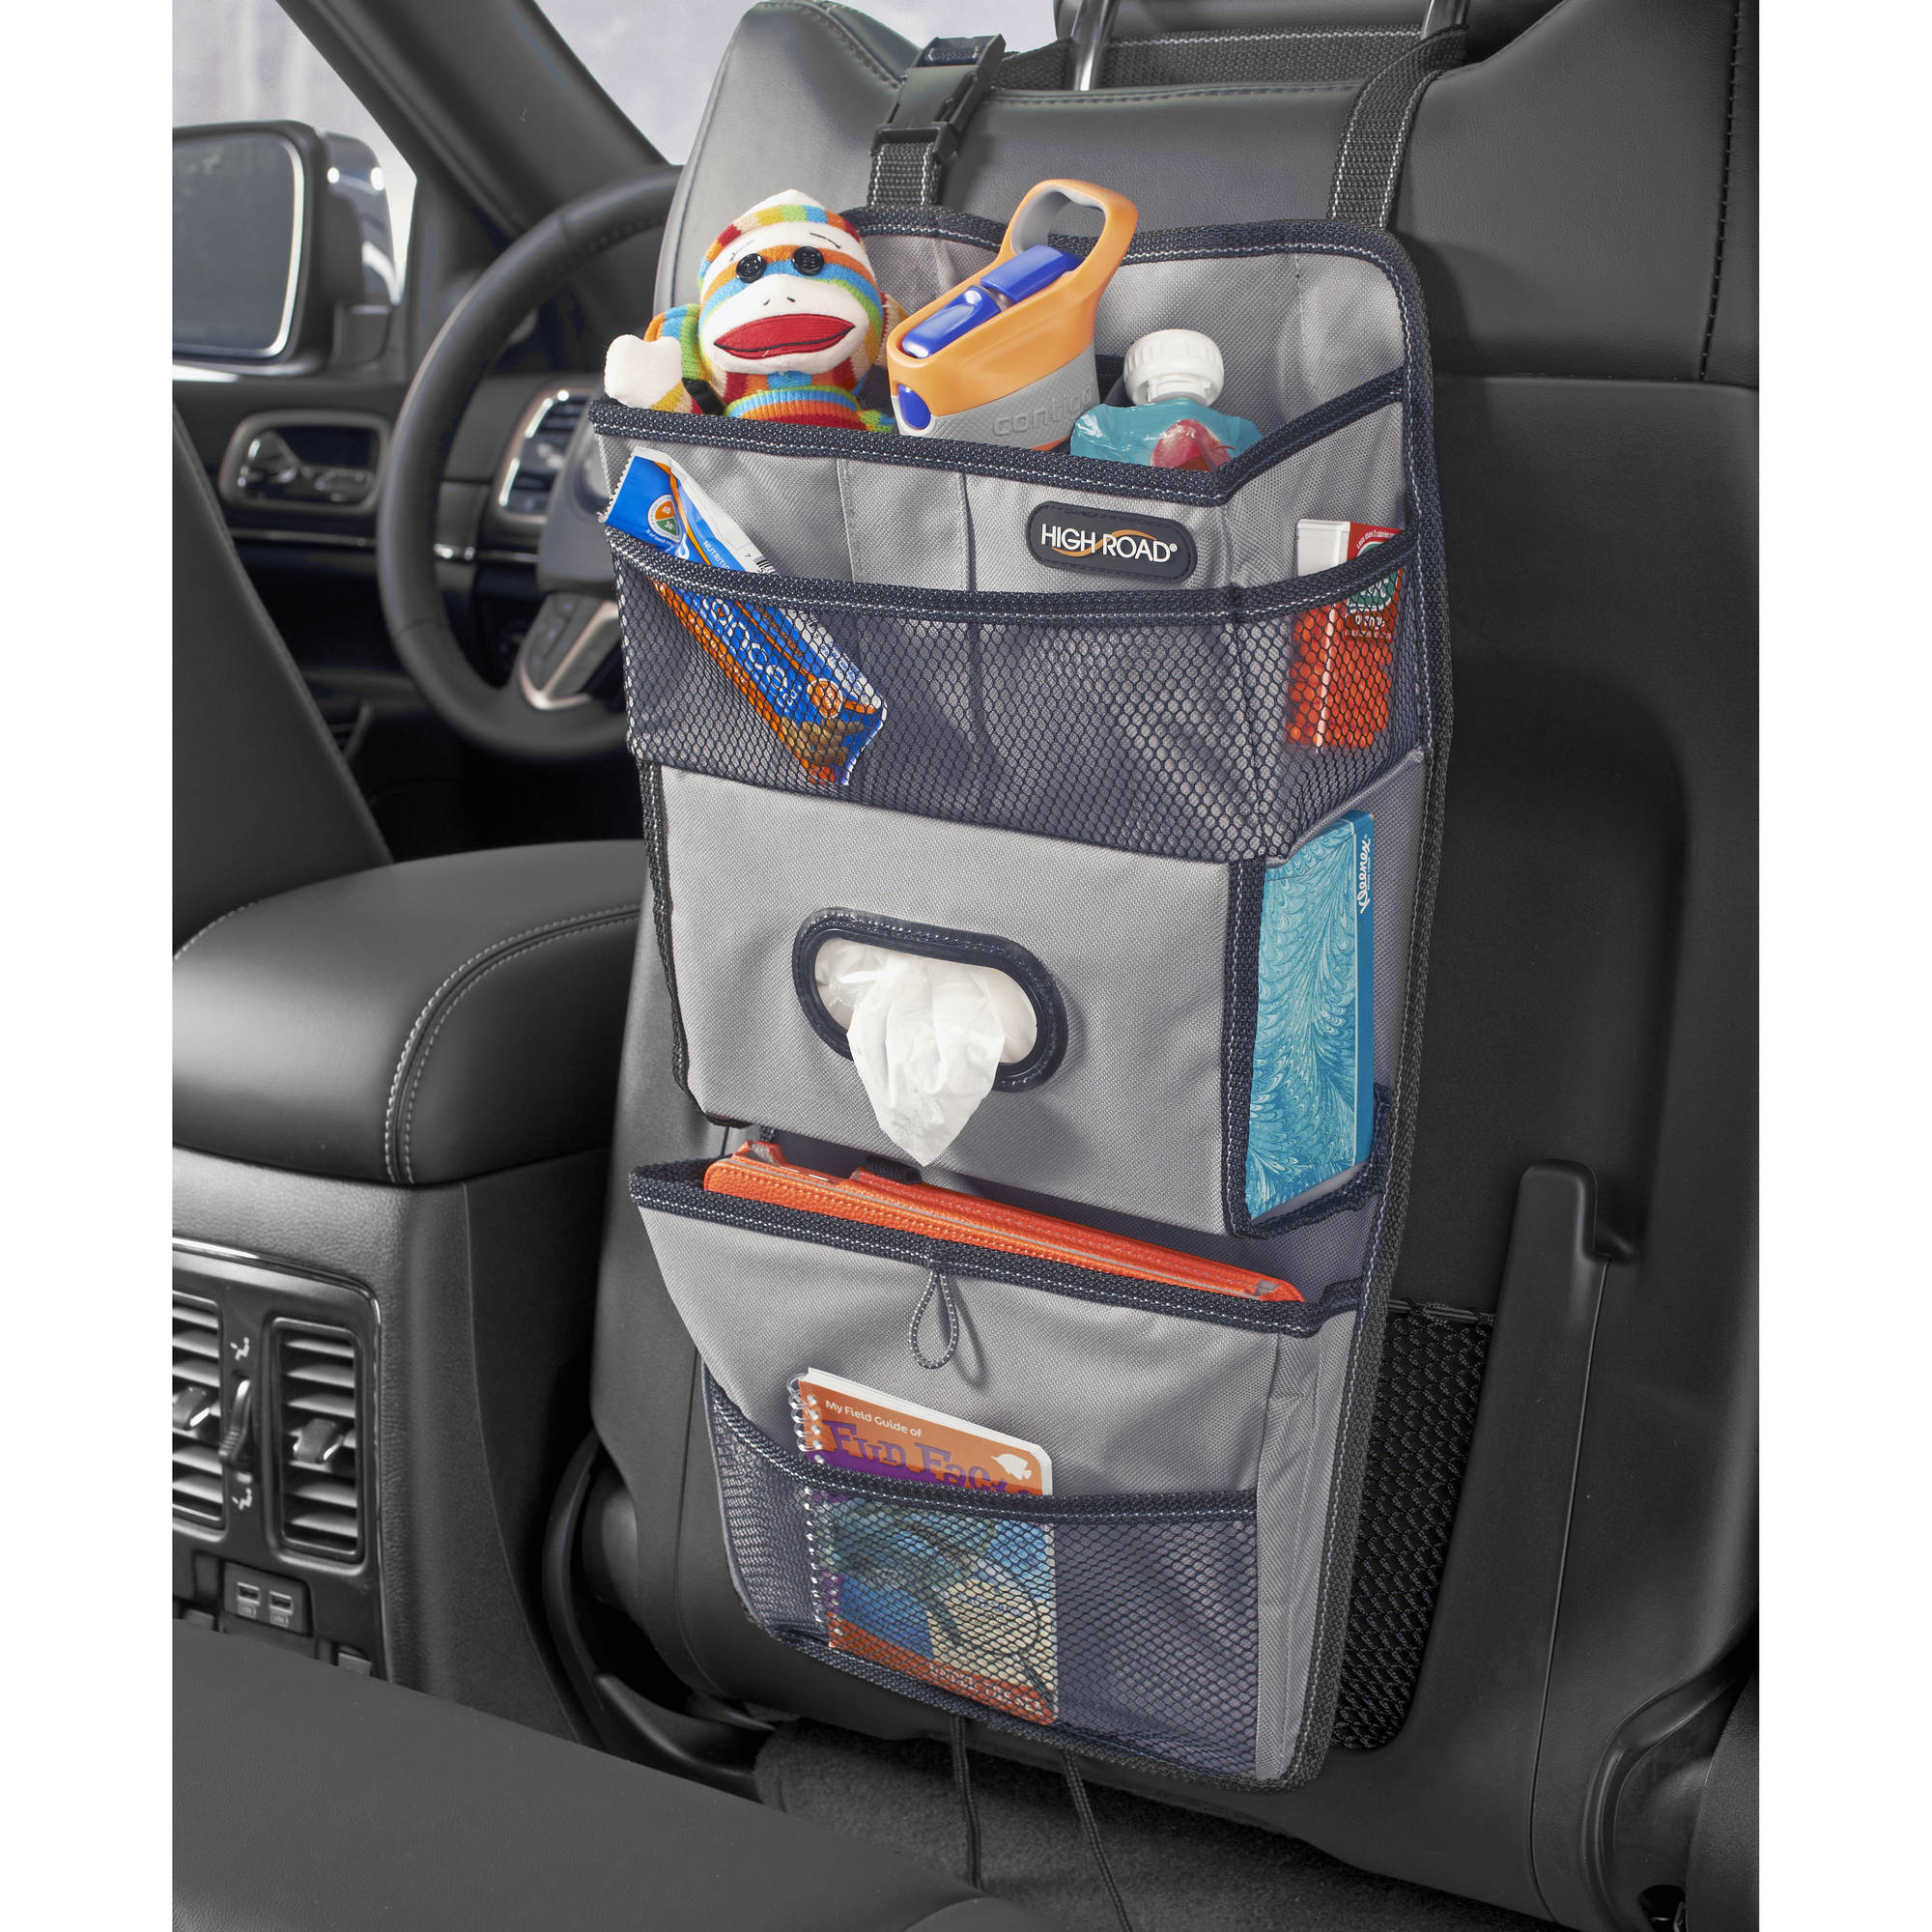 High Road TissuePockets Car Seat Back Organizer and Tissue Holder